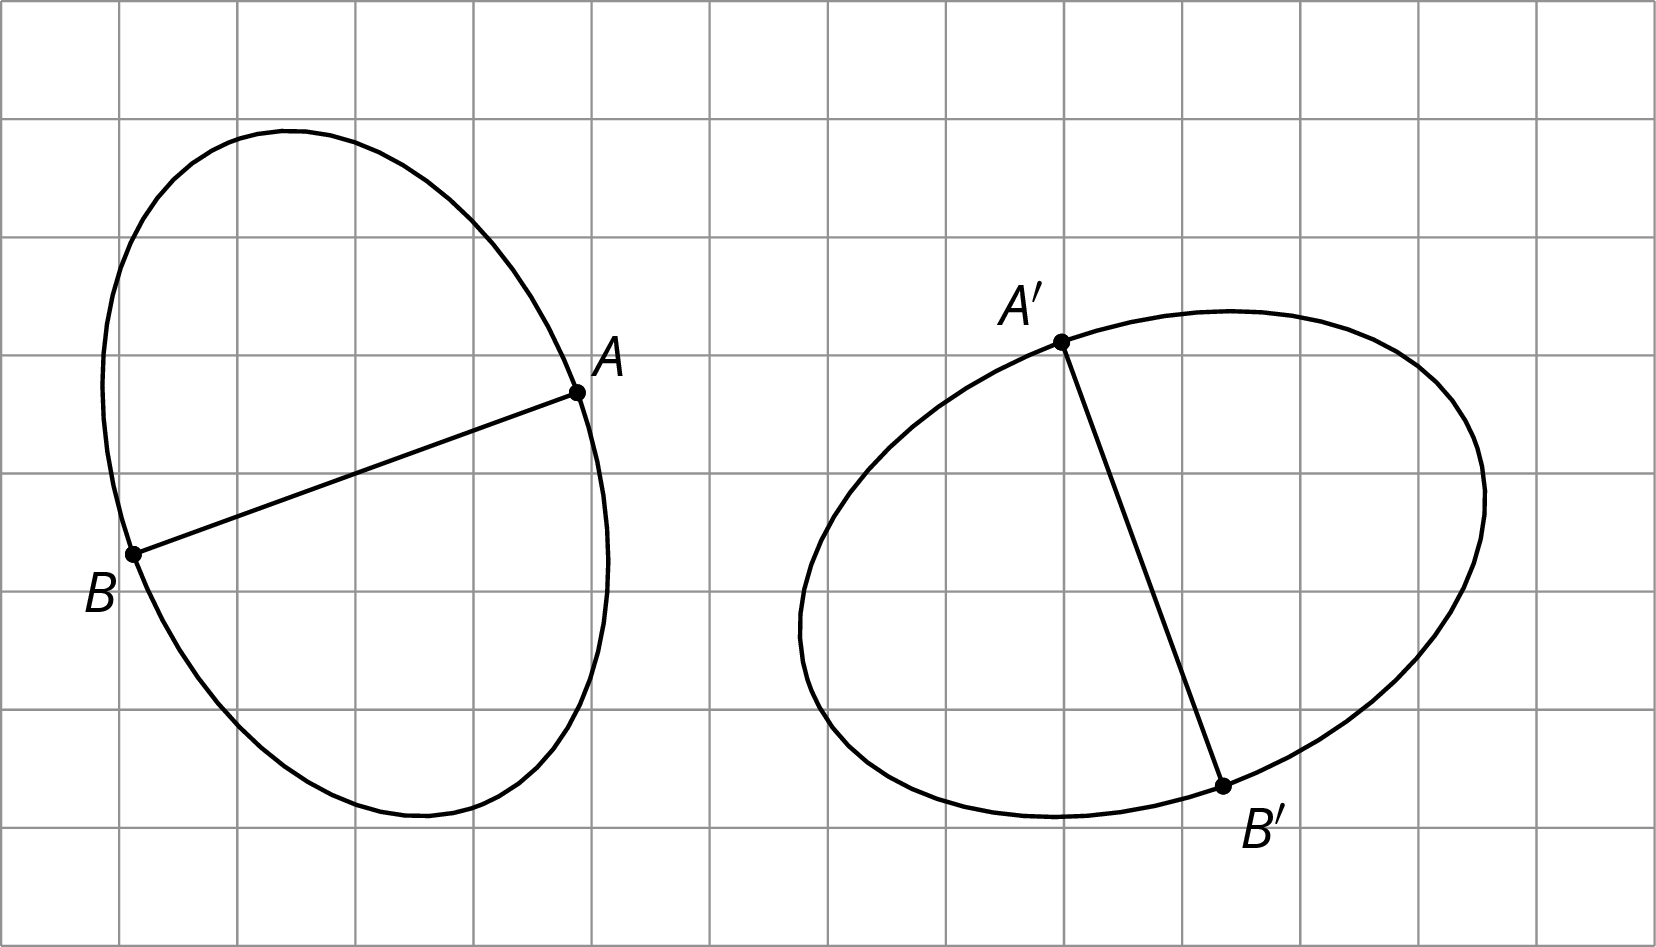 Two congruent ovals on a square grid. In the first oval, two points on opposite sides of the oval are labeled A and B and are connected by a line segment. In the second oval, two points on opposite sides of the oval are labeled A prime and B prime and are connected by a line segment.